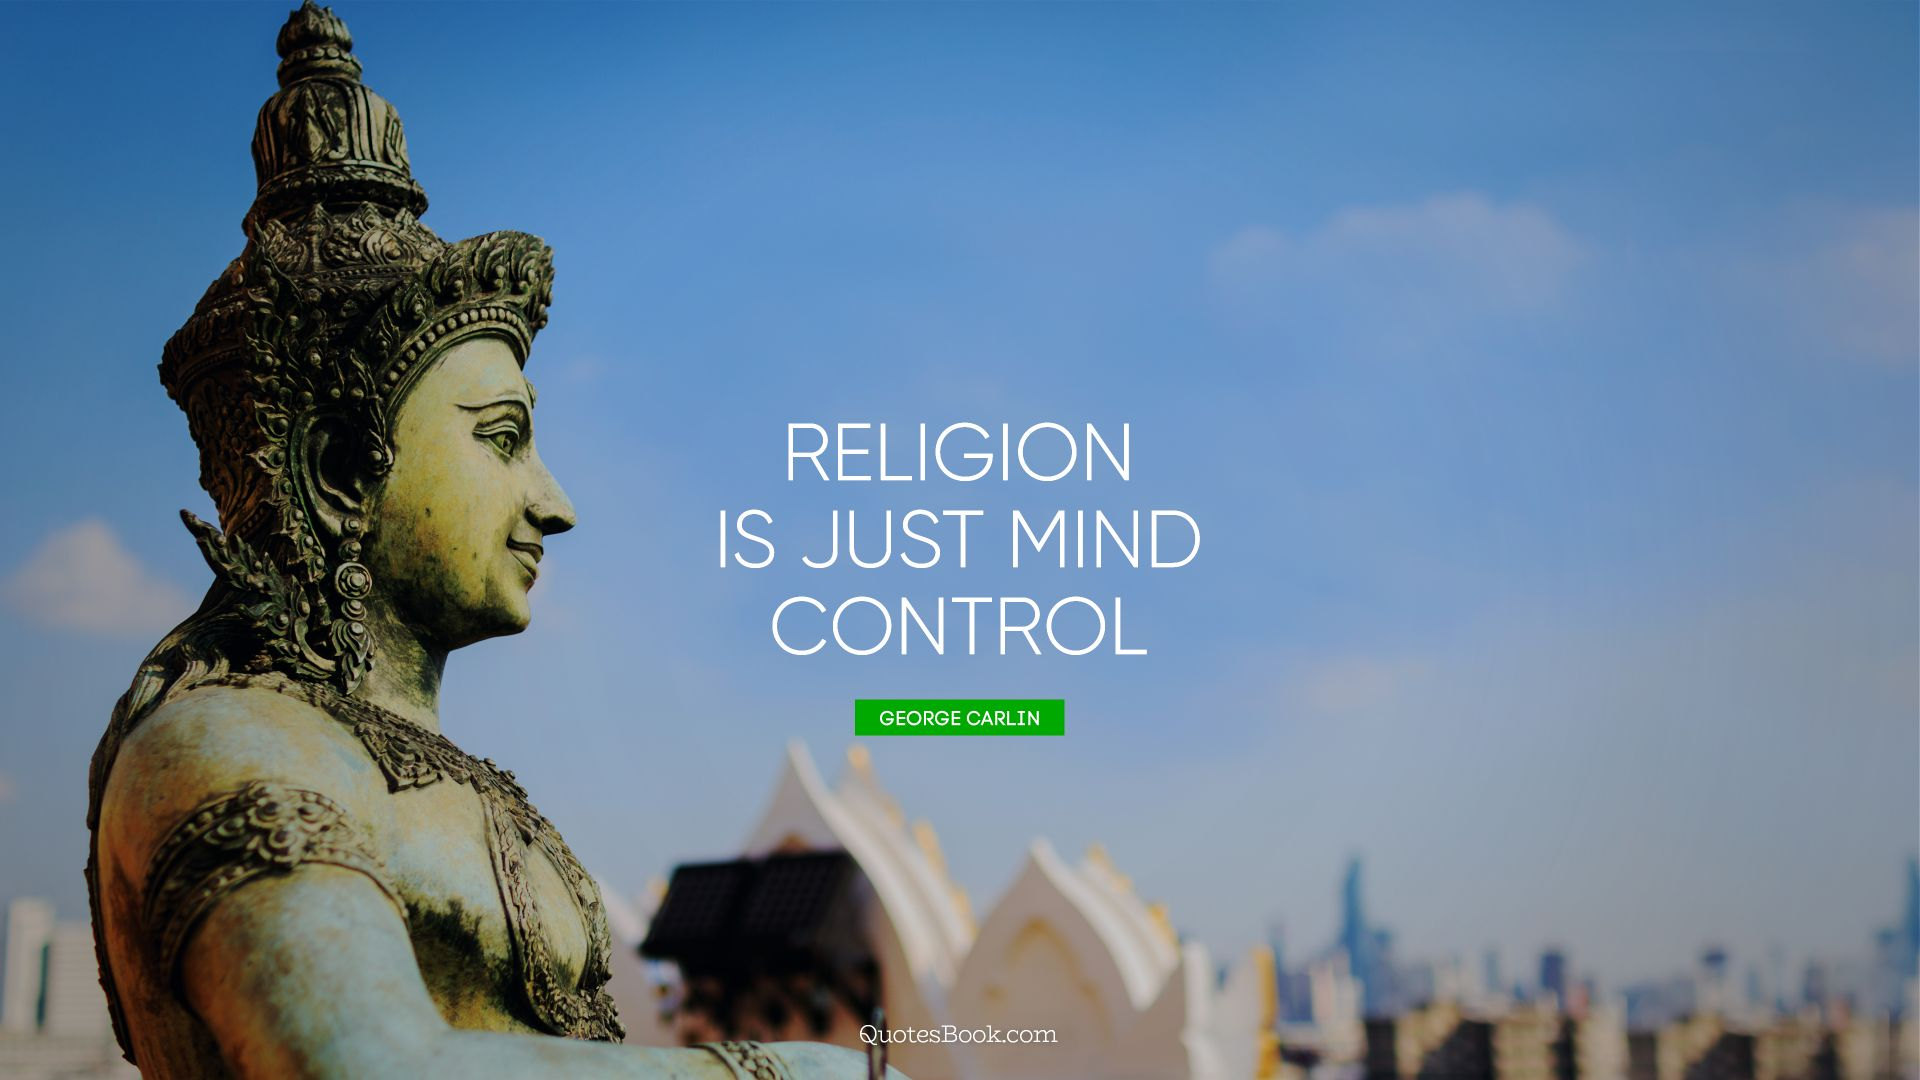 Religion is just mind control. - Quote by George Carlin